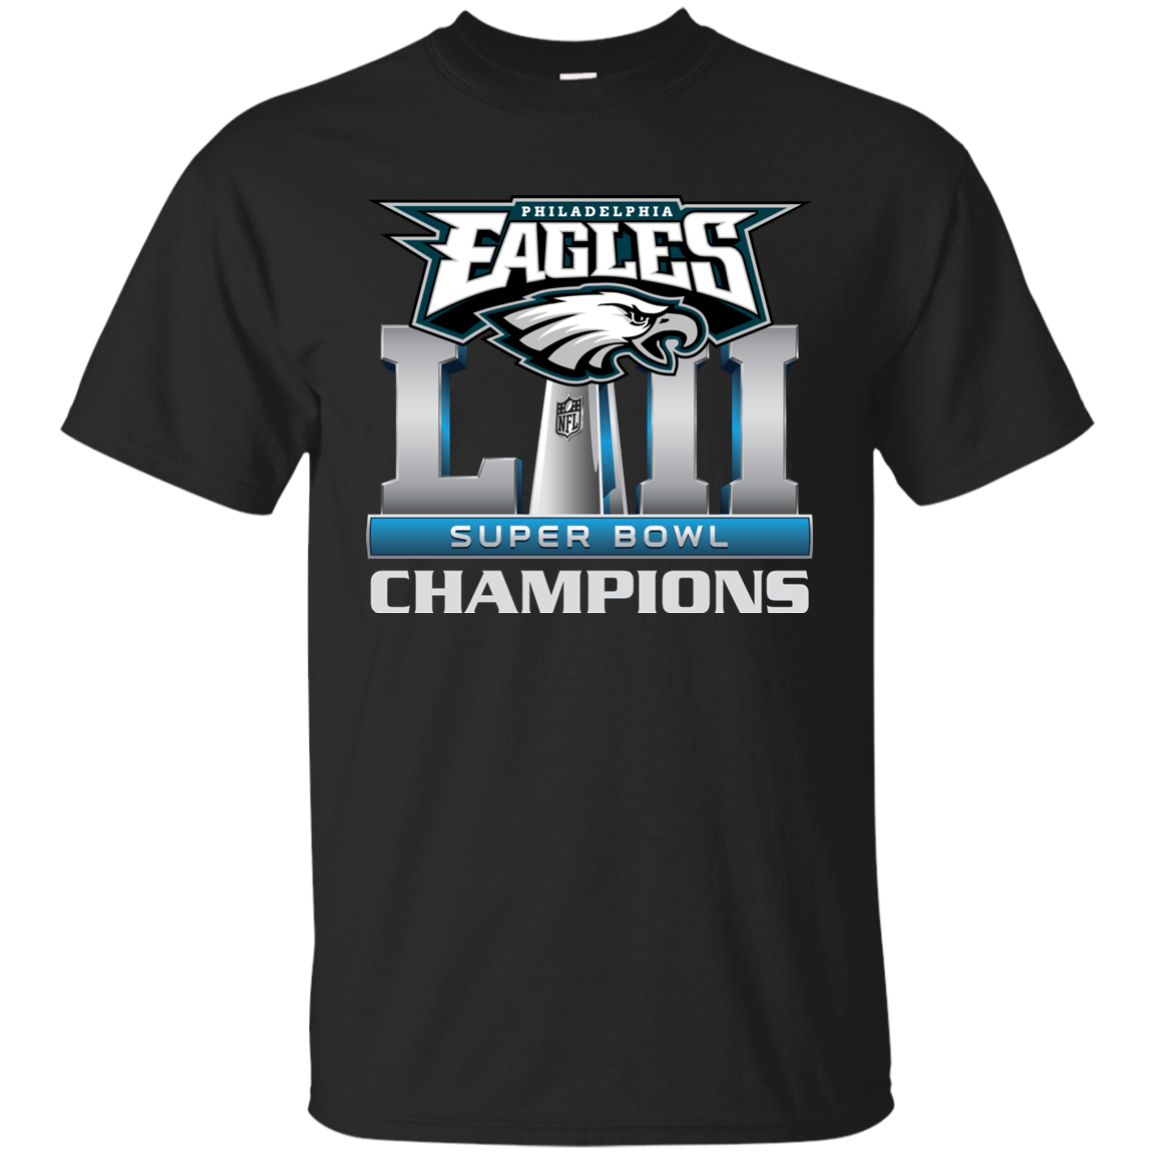 timeless design a1cb7 4181b Philadelphia Eagles Super Bowl 2018 Champions T-shirt